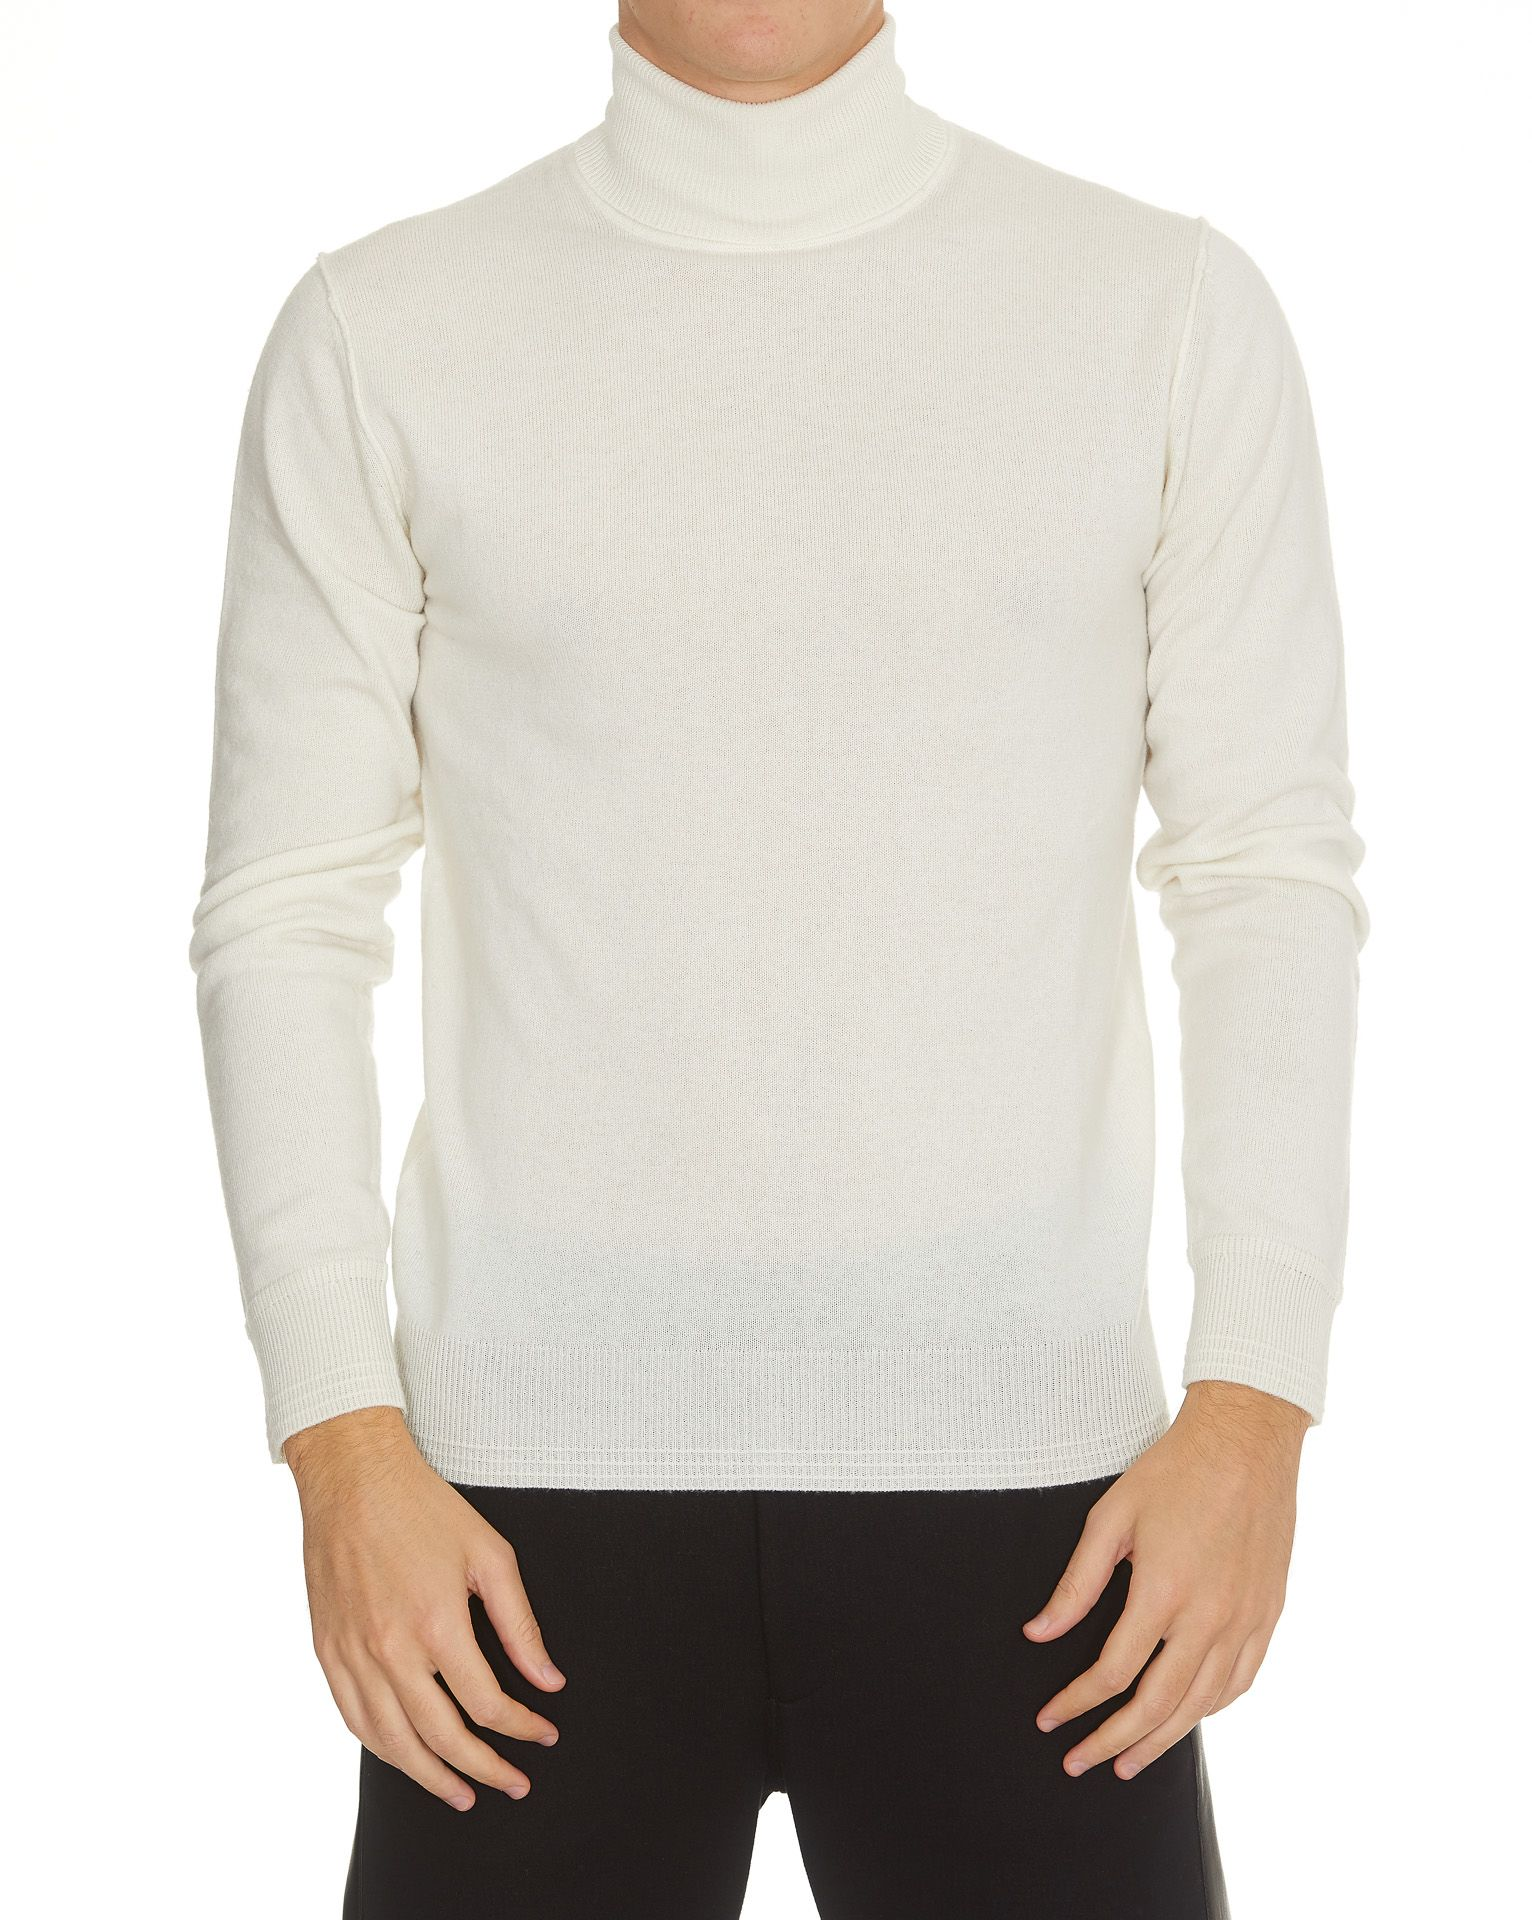 HŌSIO Sweater in White